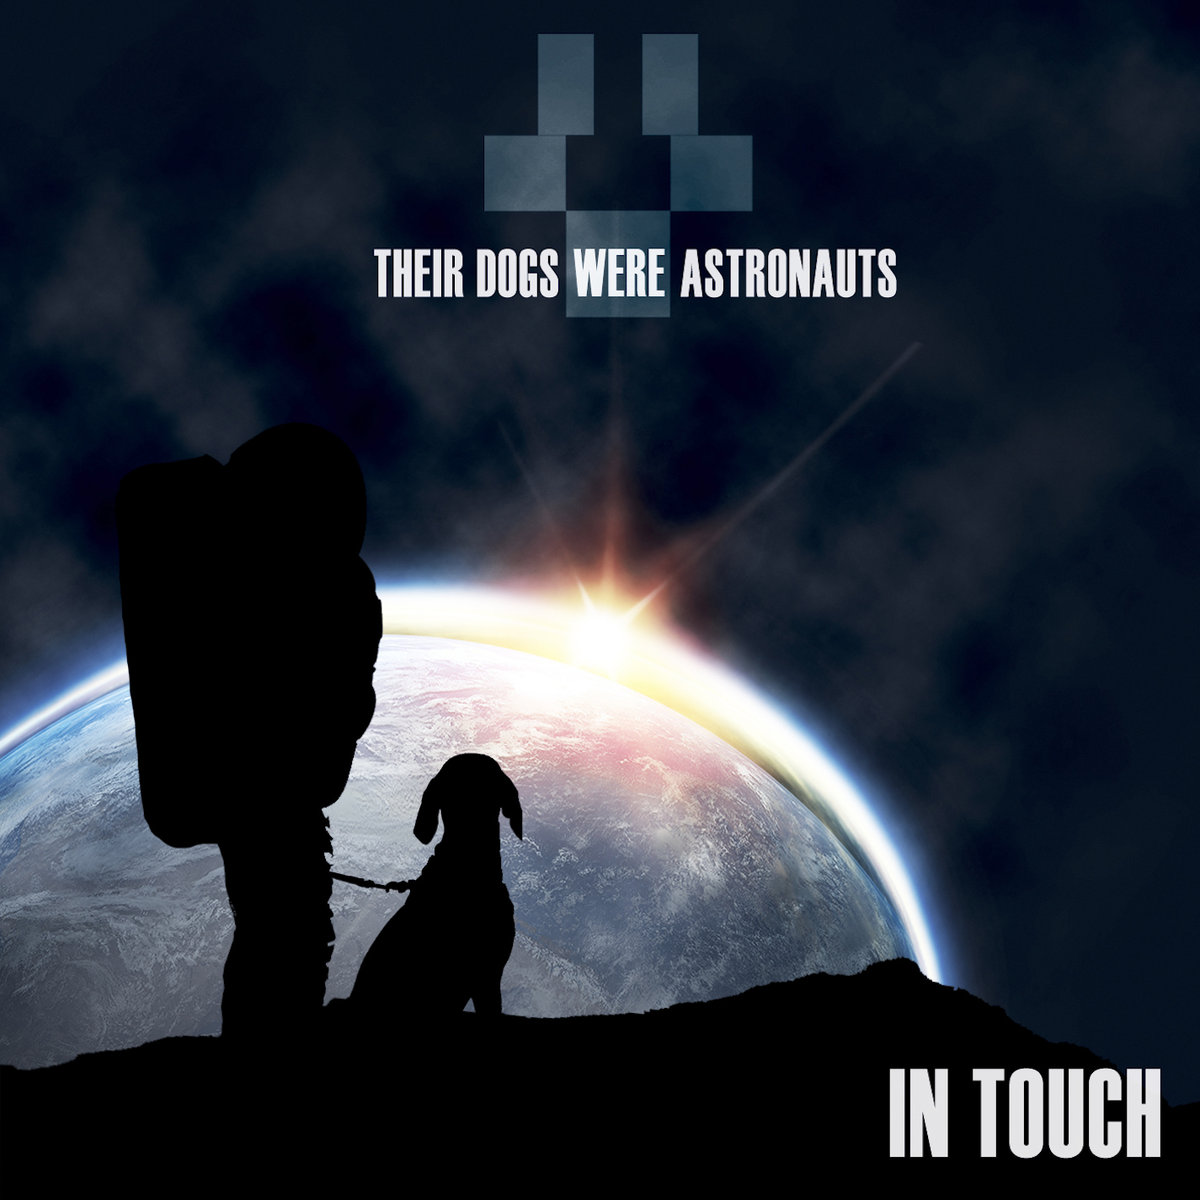 Their Dogs Were Astronauts - Solid Ground @ 'In Touch' album (instrumental metal, metal)